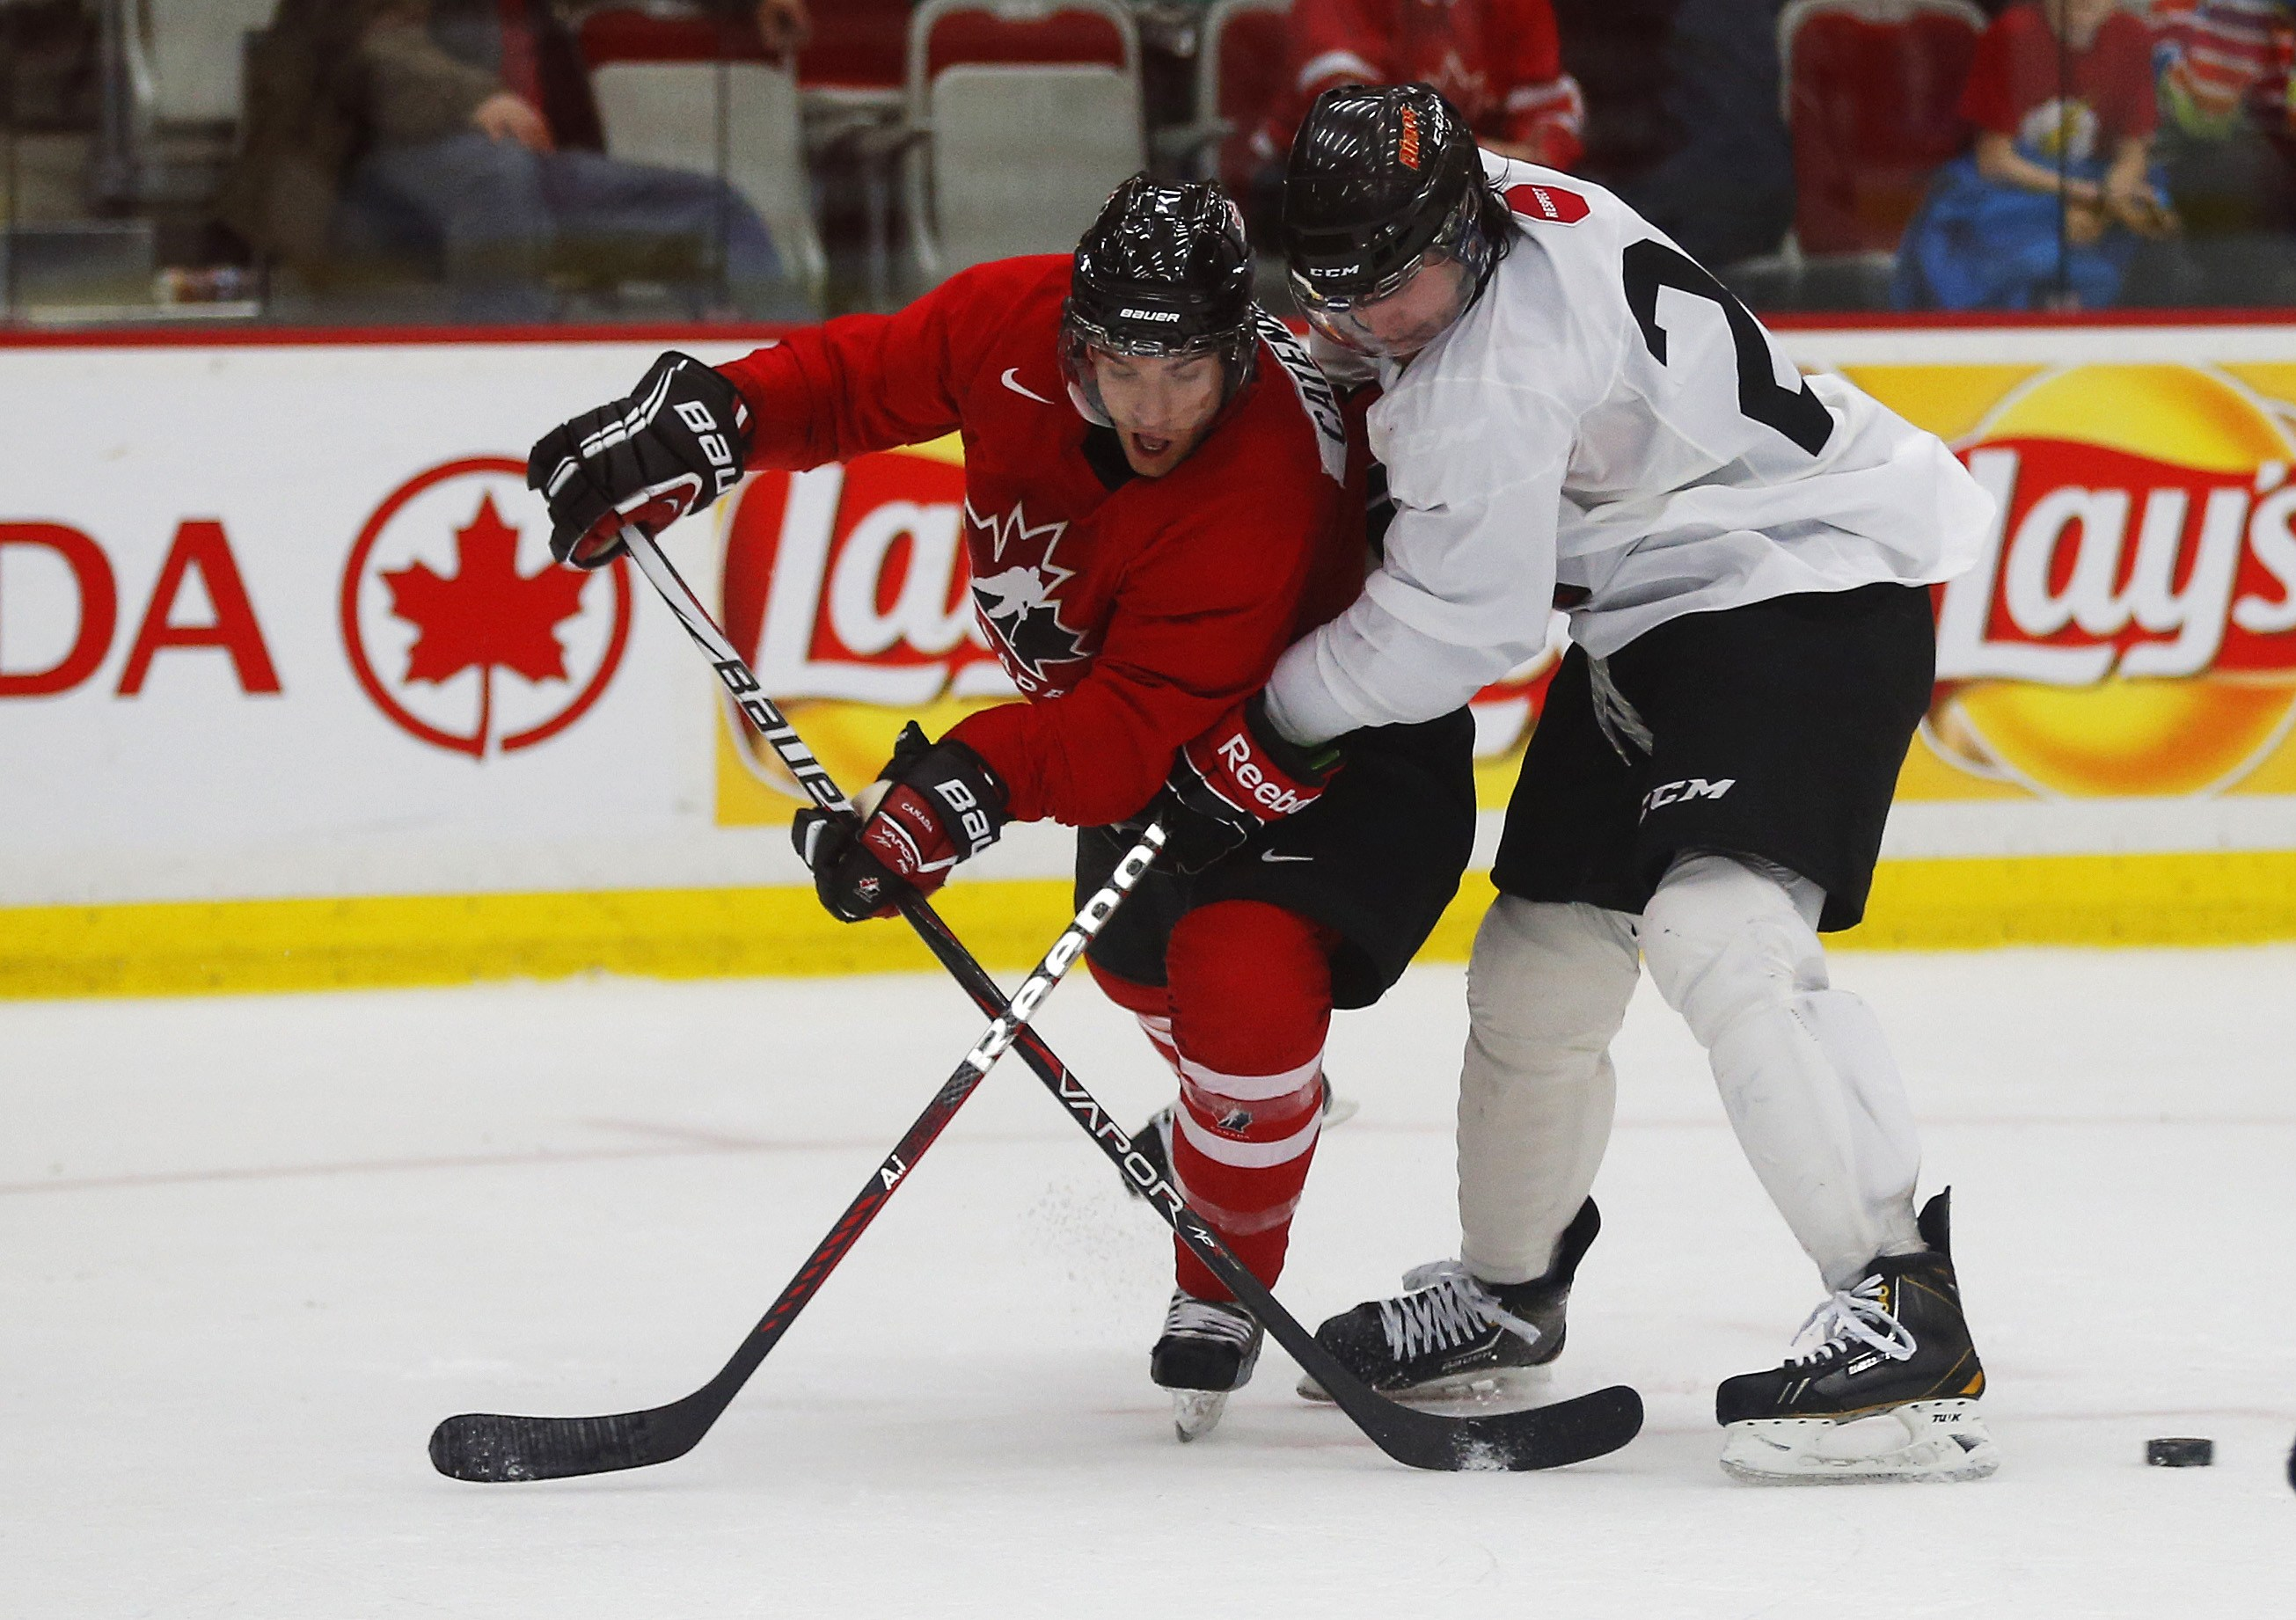 Team Canada's Daniel Catenacci (L) is stopped from taking a shot by CIS' Kodie Curran in selection camp.